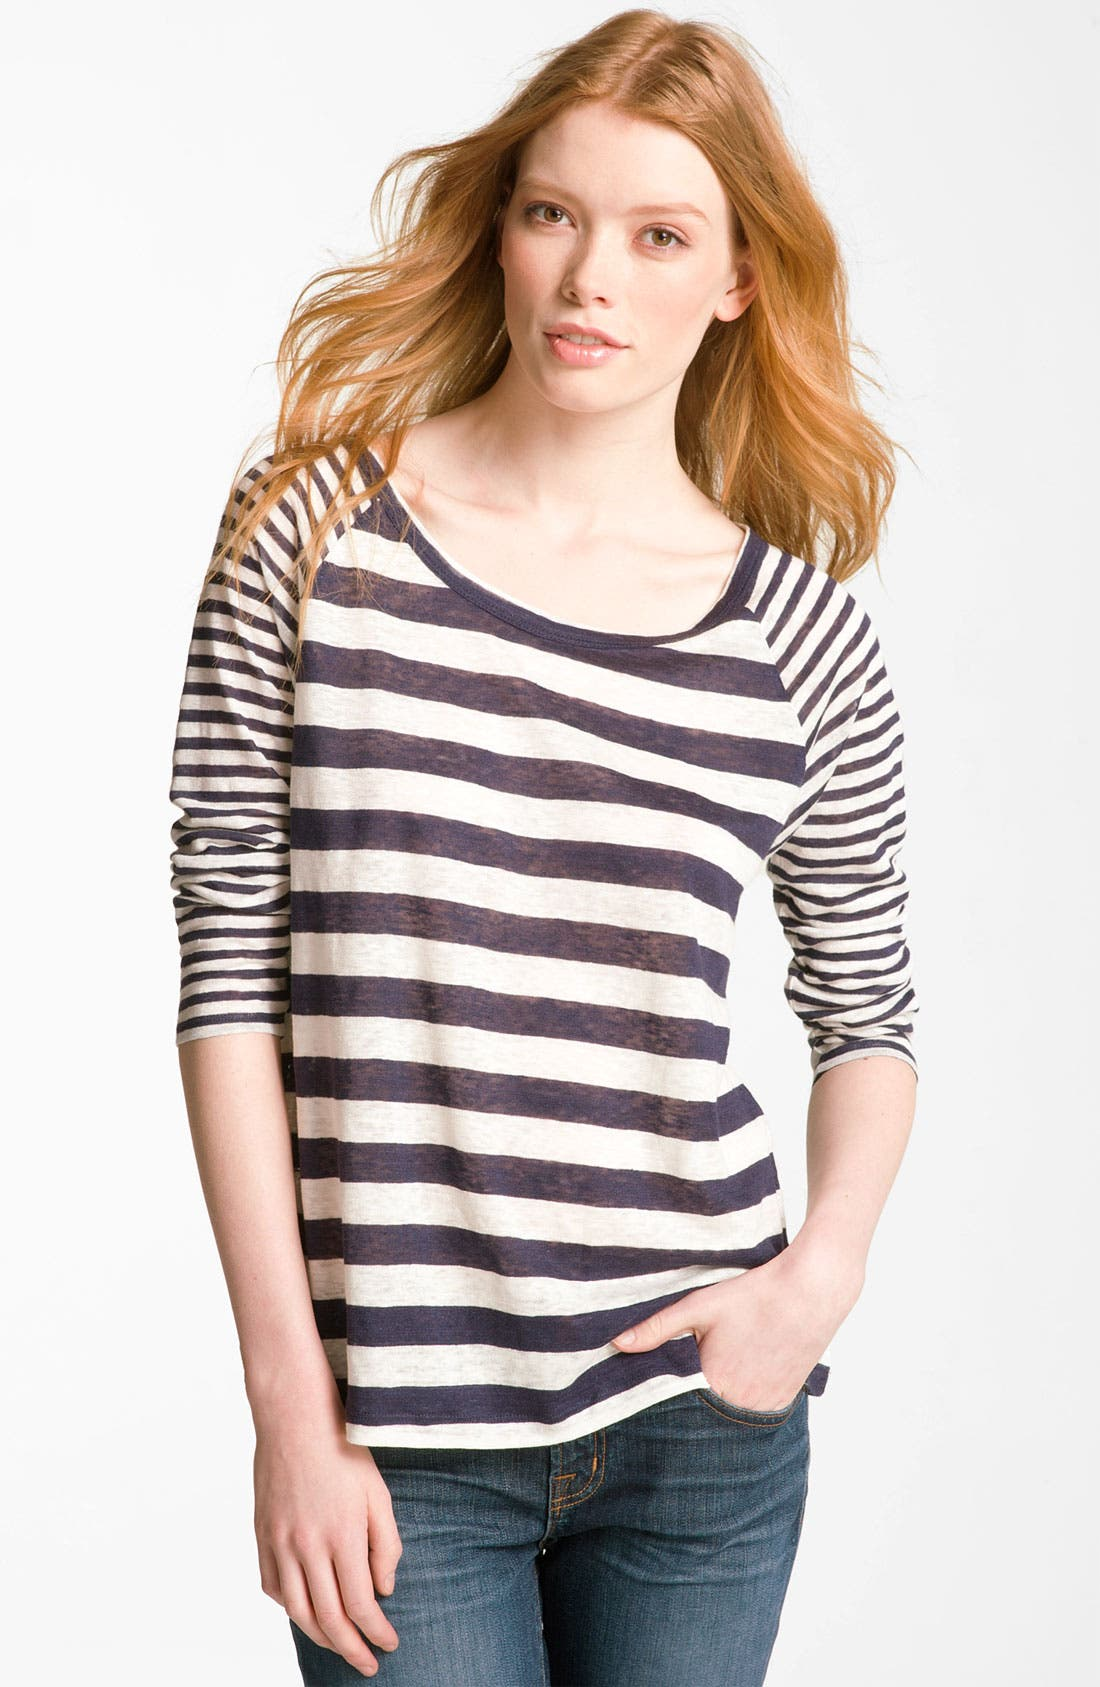 Main Image - Joie 'Gloriosa' Sheer Stripe Raglan Top